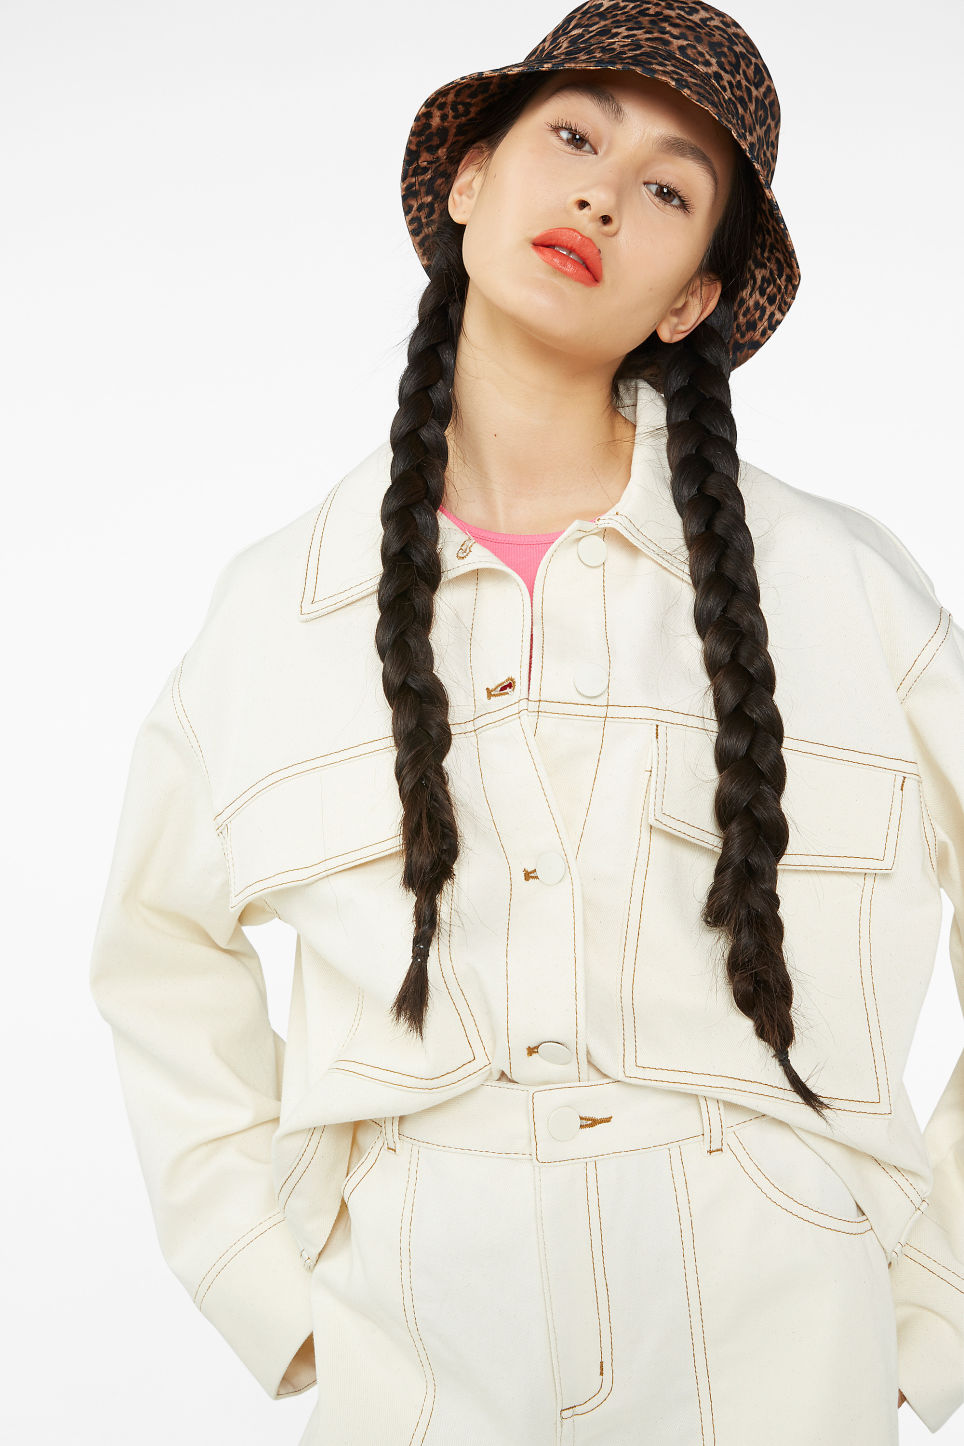 cc1db20e65f Cropped contrast stitch jacket - Cream white - Coats   Jackets - Monki